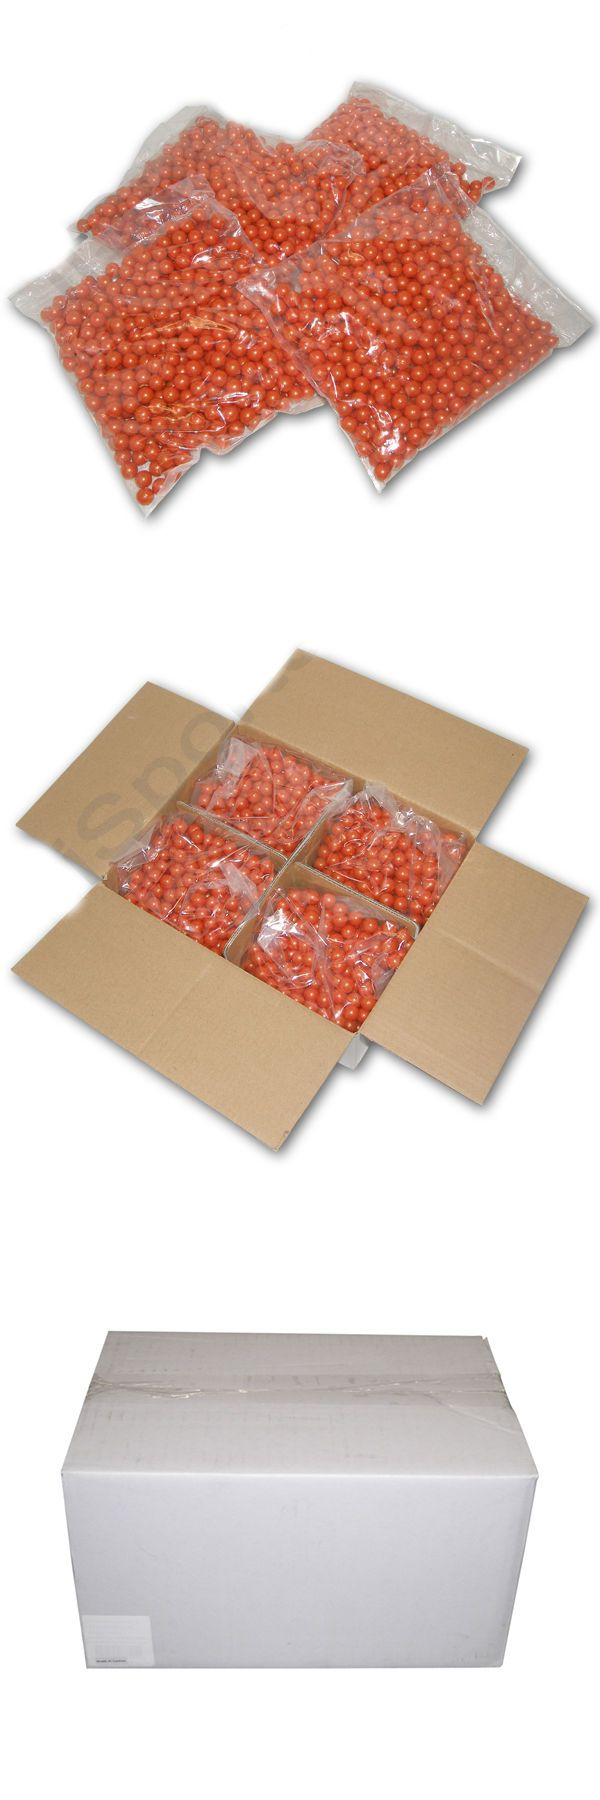 Paintballs 16049: A+ Premium White Box Rec Paintballs Orange/Yellow 2000Cs Gun Maker Ammo -> BUY IT NOW ONLY: $73.18 on eBay!